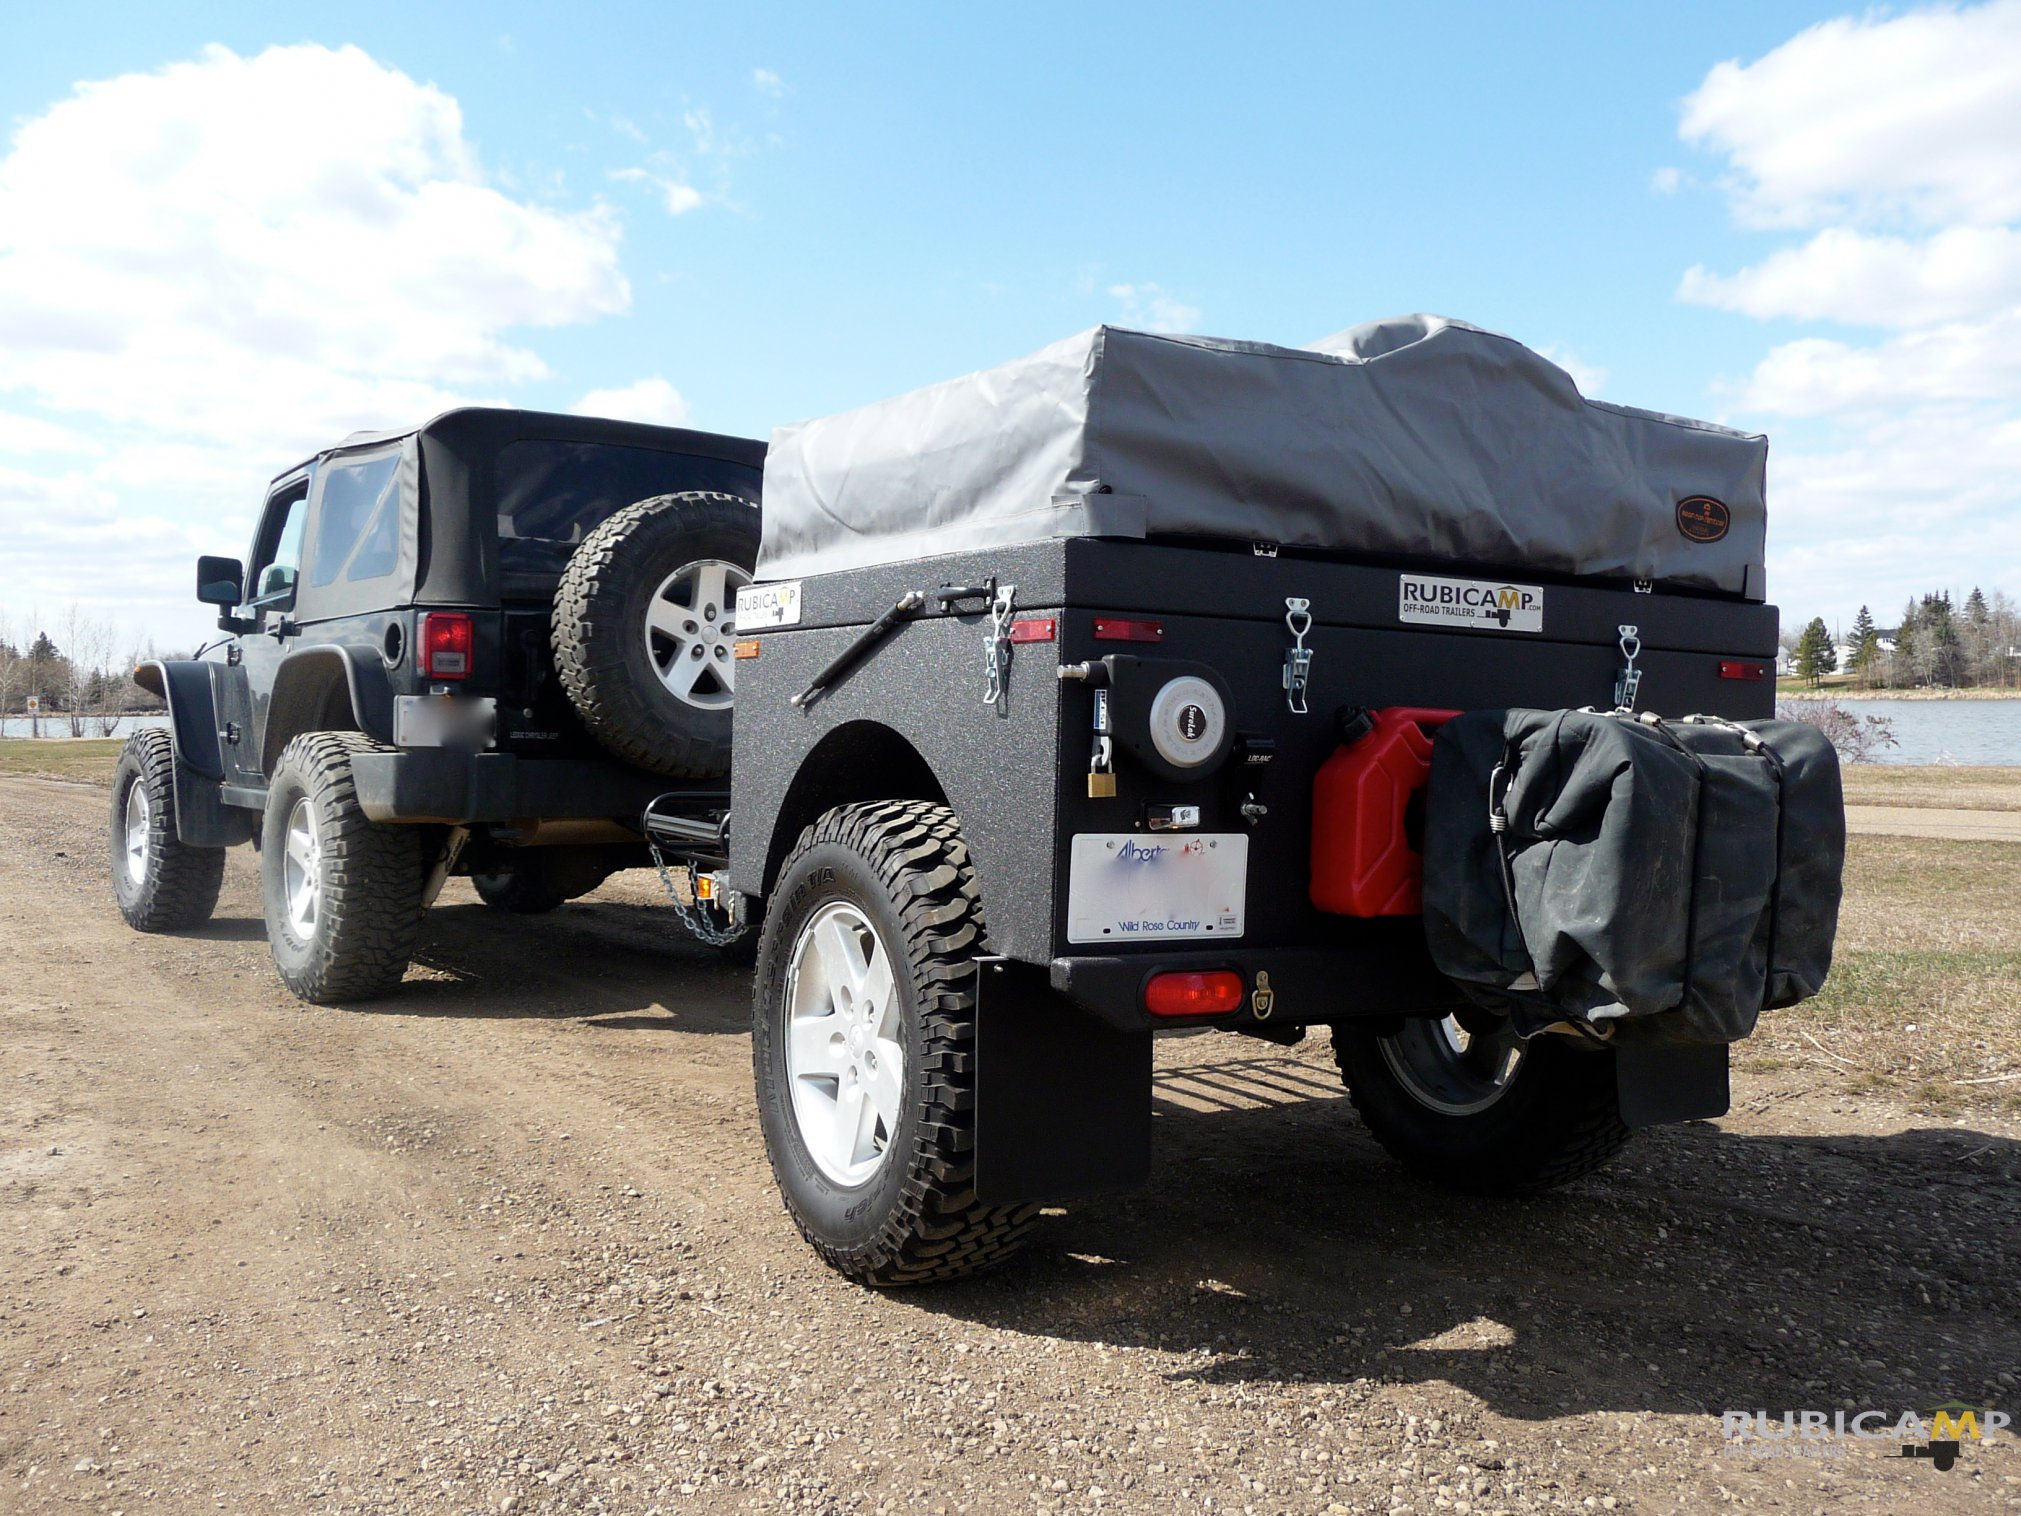 Creative The Tvan MV5 OffRoad Camper Trailers Are Engineered To Provide You With Everything Youd Need In Order To Enjoy Time Spent In Backcountry Without Feeling As Though Youre Actually Roughing It The Trailers Offer Ample Living And Sleeping